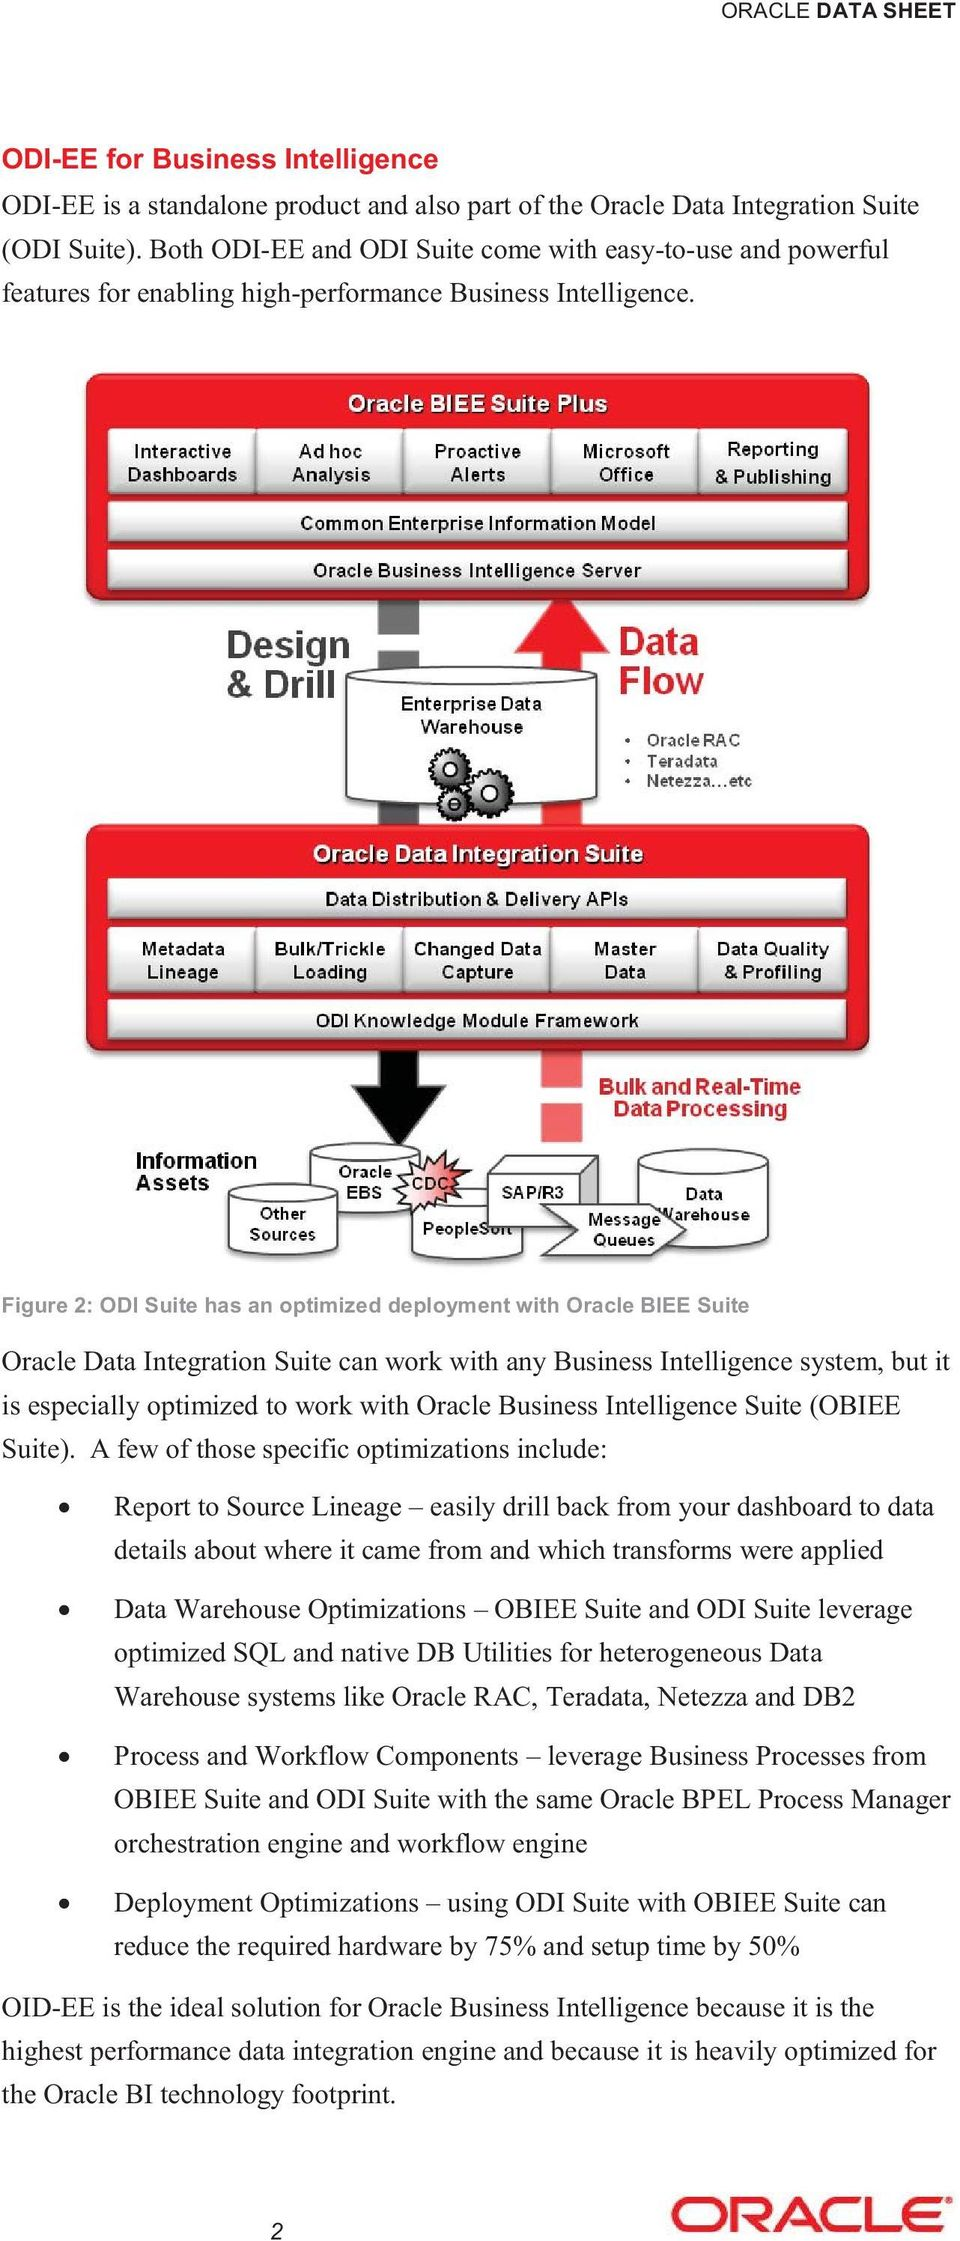 Figure 2: ODI Suite has an optimized deployment with Oracle BIEE Suite Oracle Data Integration Suite can work with any Business Intelligence system, but it is especially optimized to work with Oracle